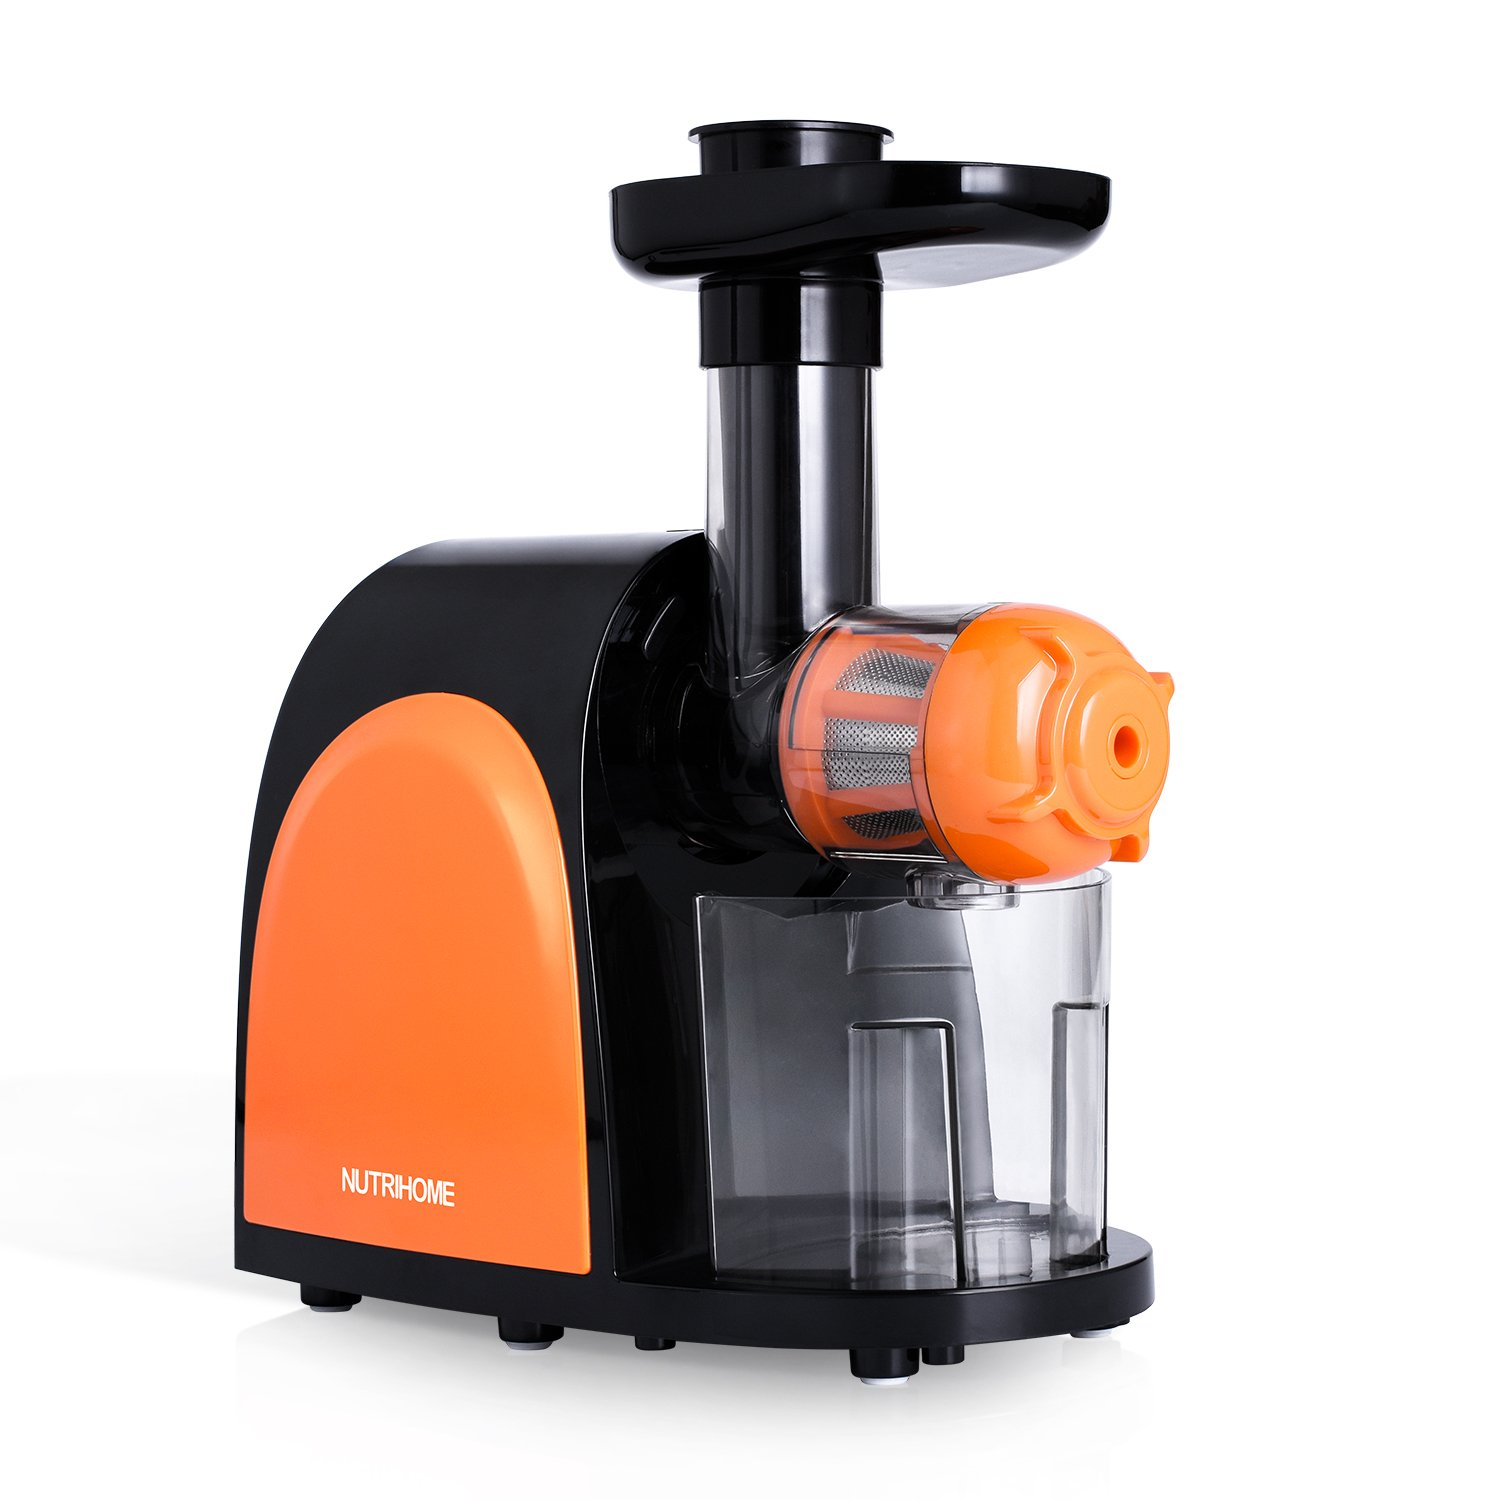 Slow Juicer Nutrition : Best Masticating Juicer 2018, Reviews and Buying Guide